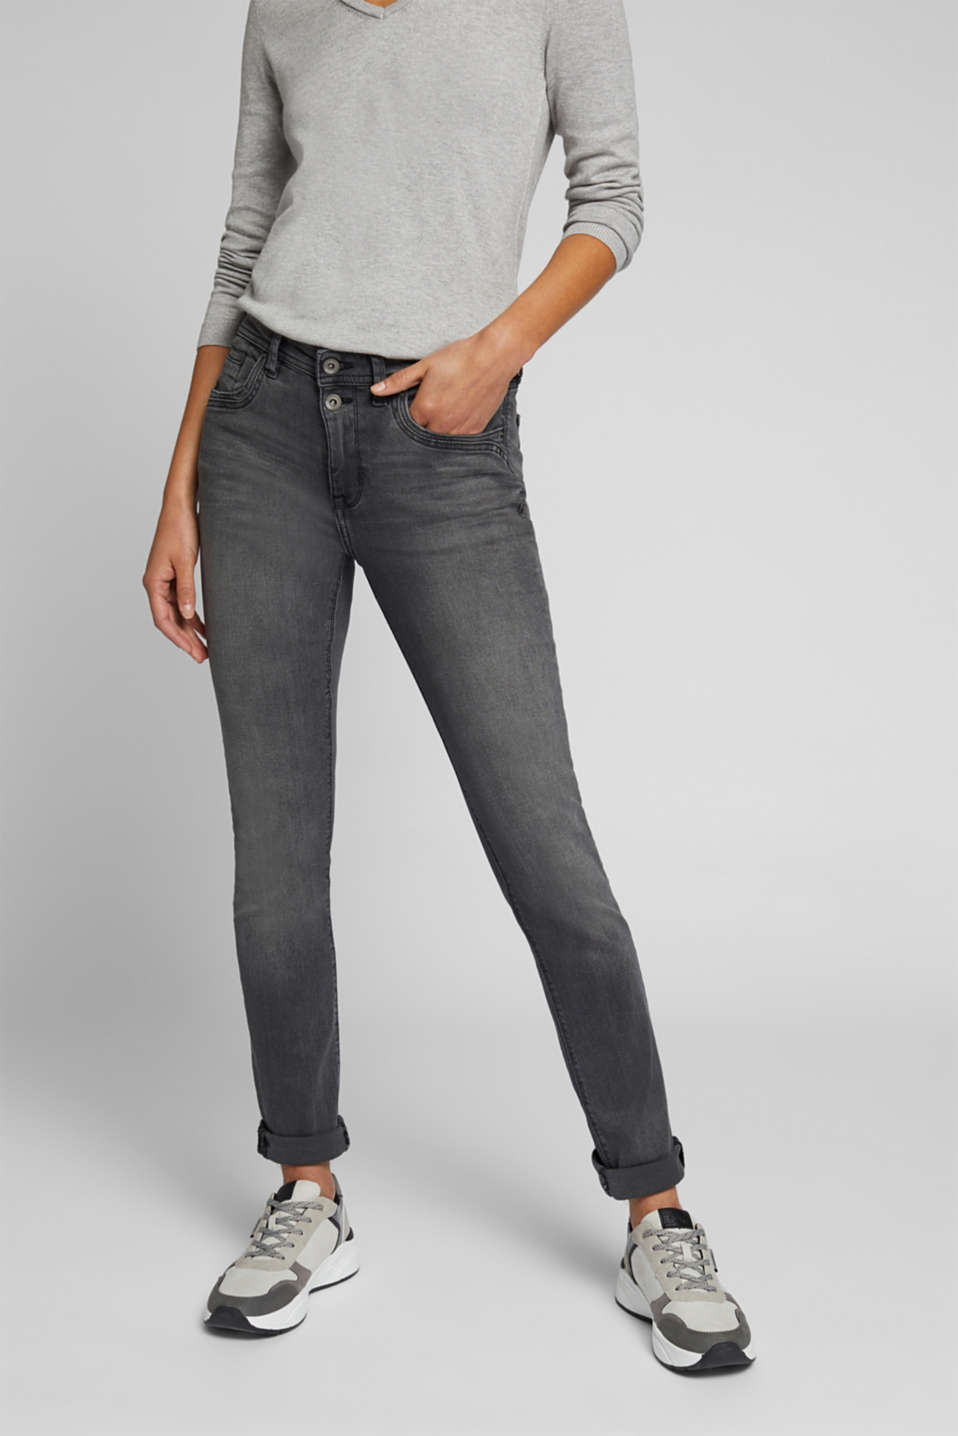 edc - Two-button jeans with organic cotton